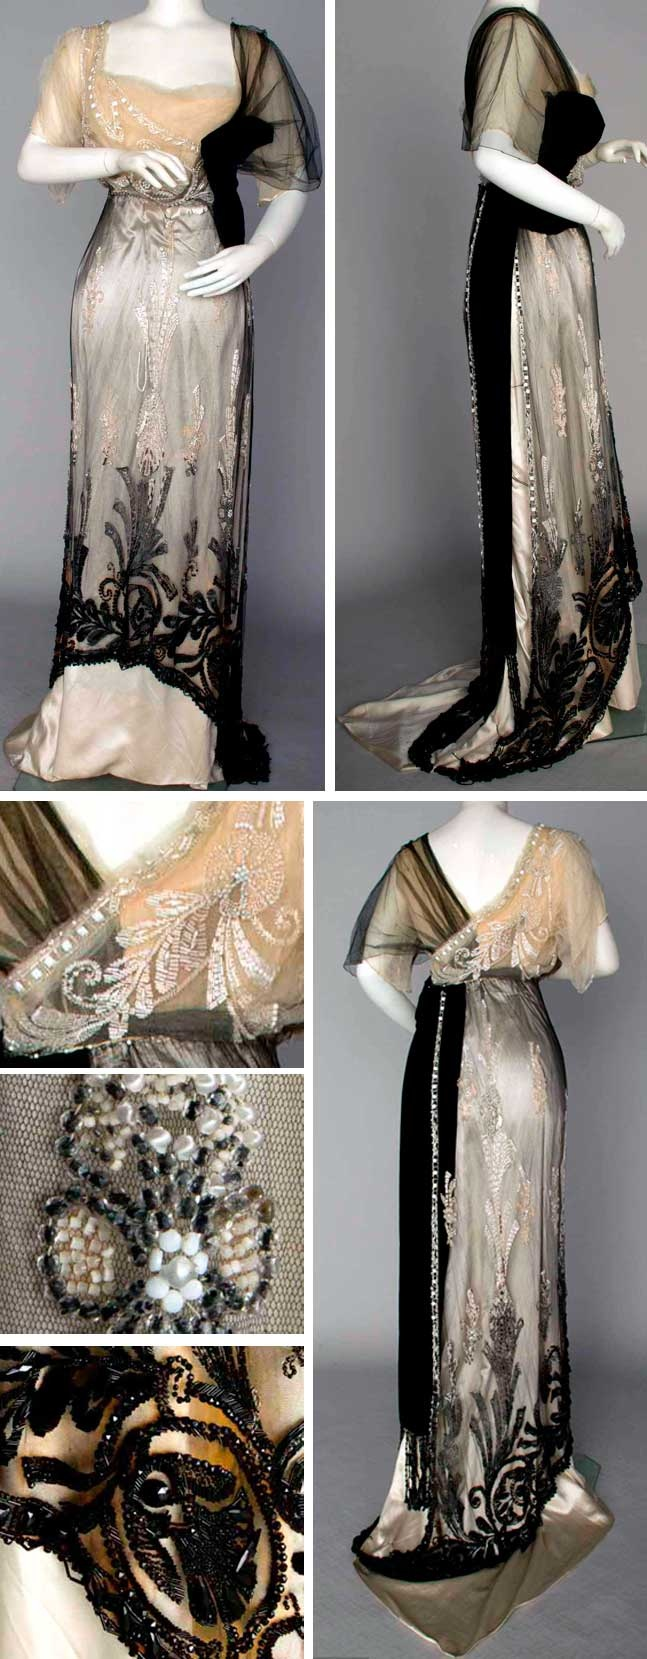 Evening gown, Jeanne Paquin, Paris, Winter 1911. Two pieces, Empire waist. Black silk net over ivory silk satin and black velvet sash and bow. All decorated with white and jet beads,